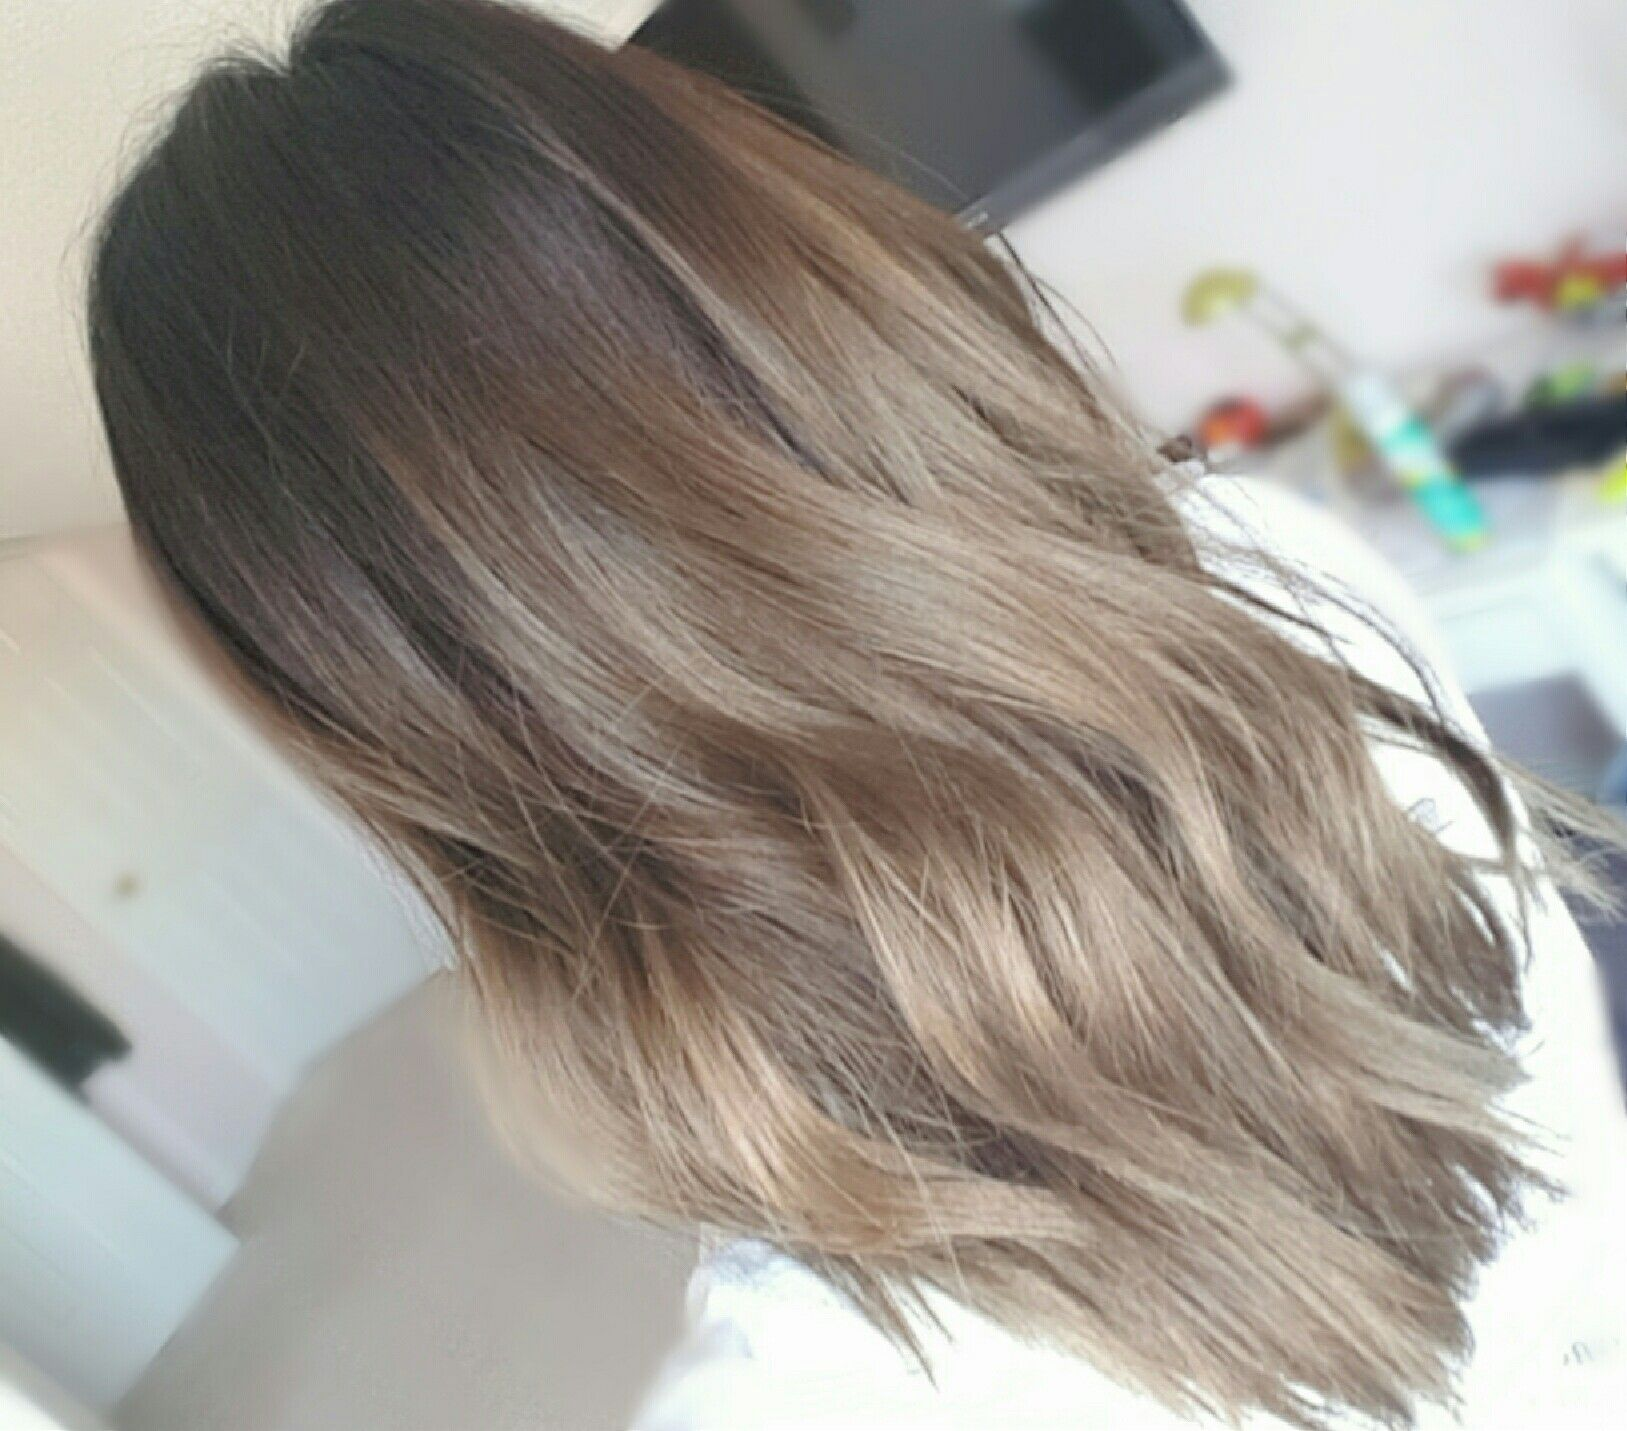 1 Month Faded After Dying My Hair Grey Faded From Grey Short Medium Length Asian Balayage Ombre Hair Color Asian Korean Hair Color Medium Hair Styles